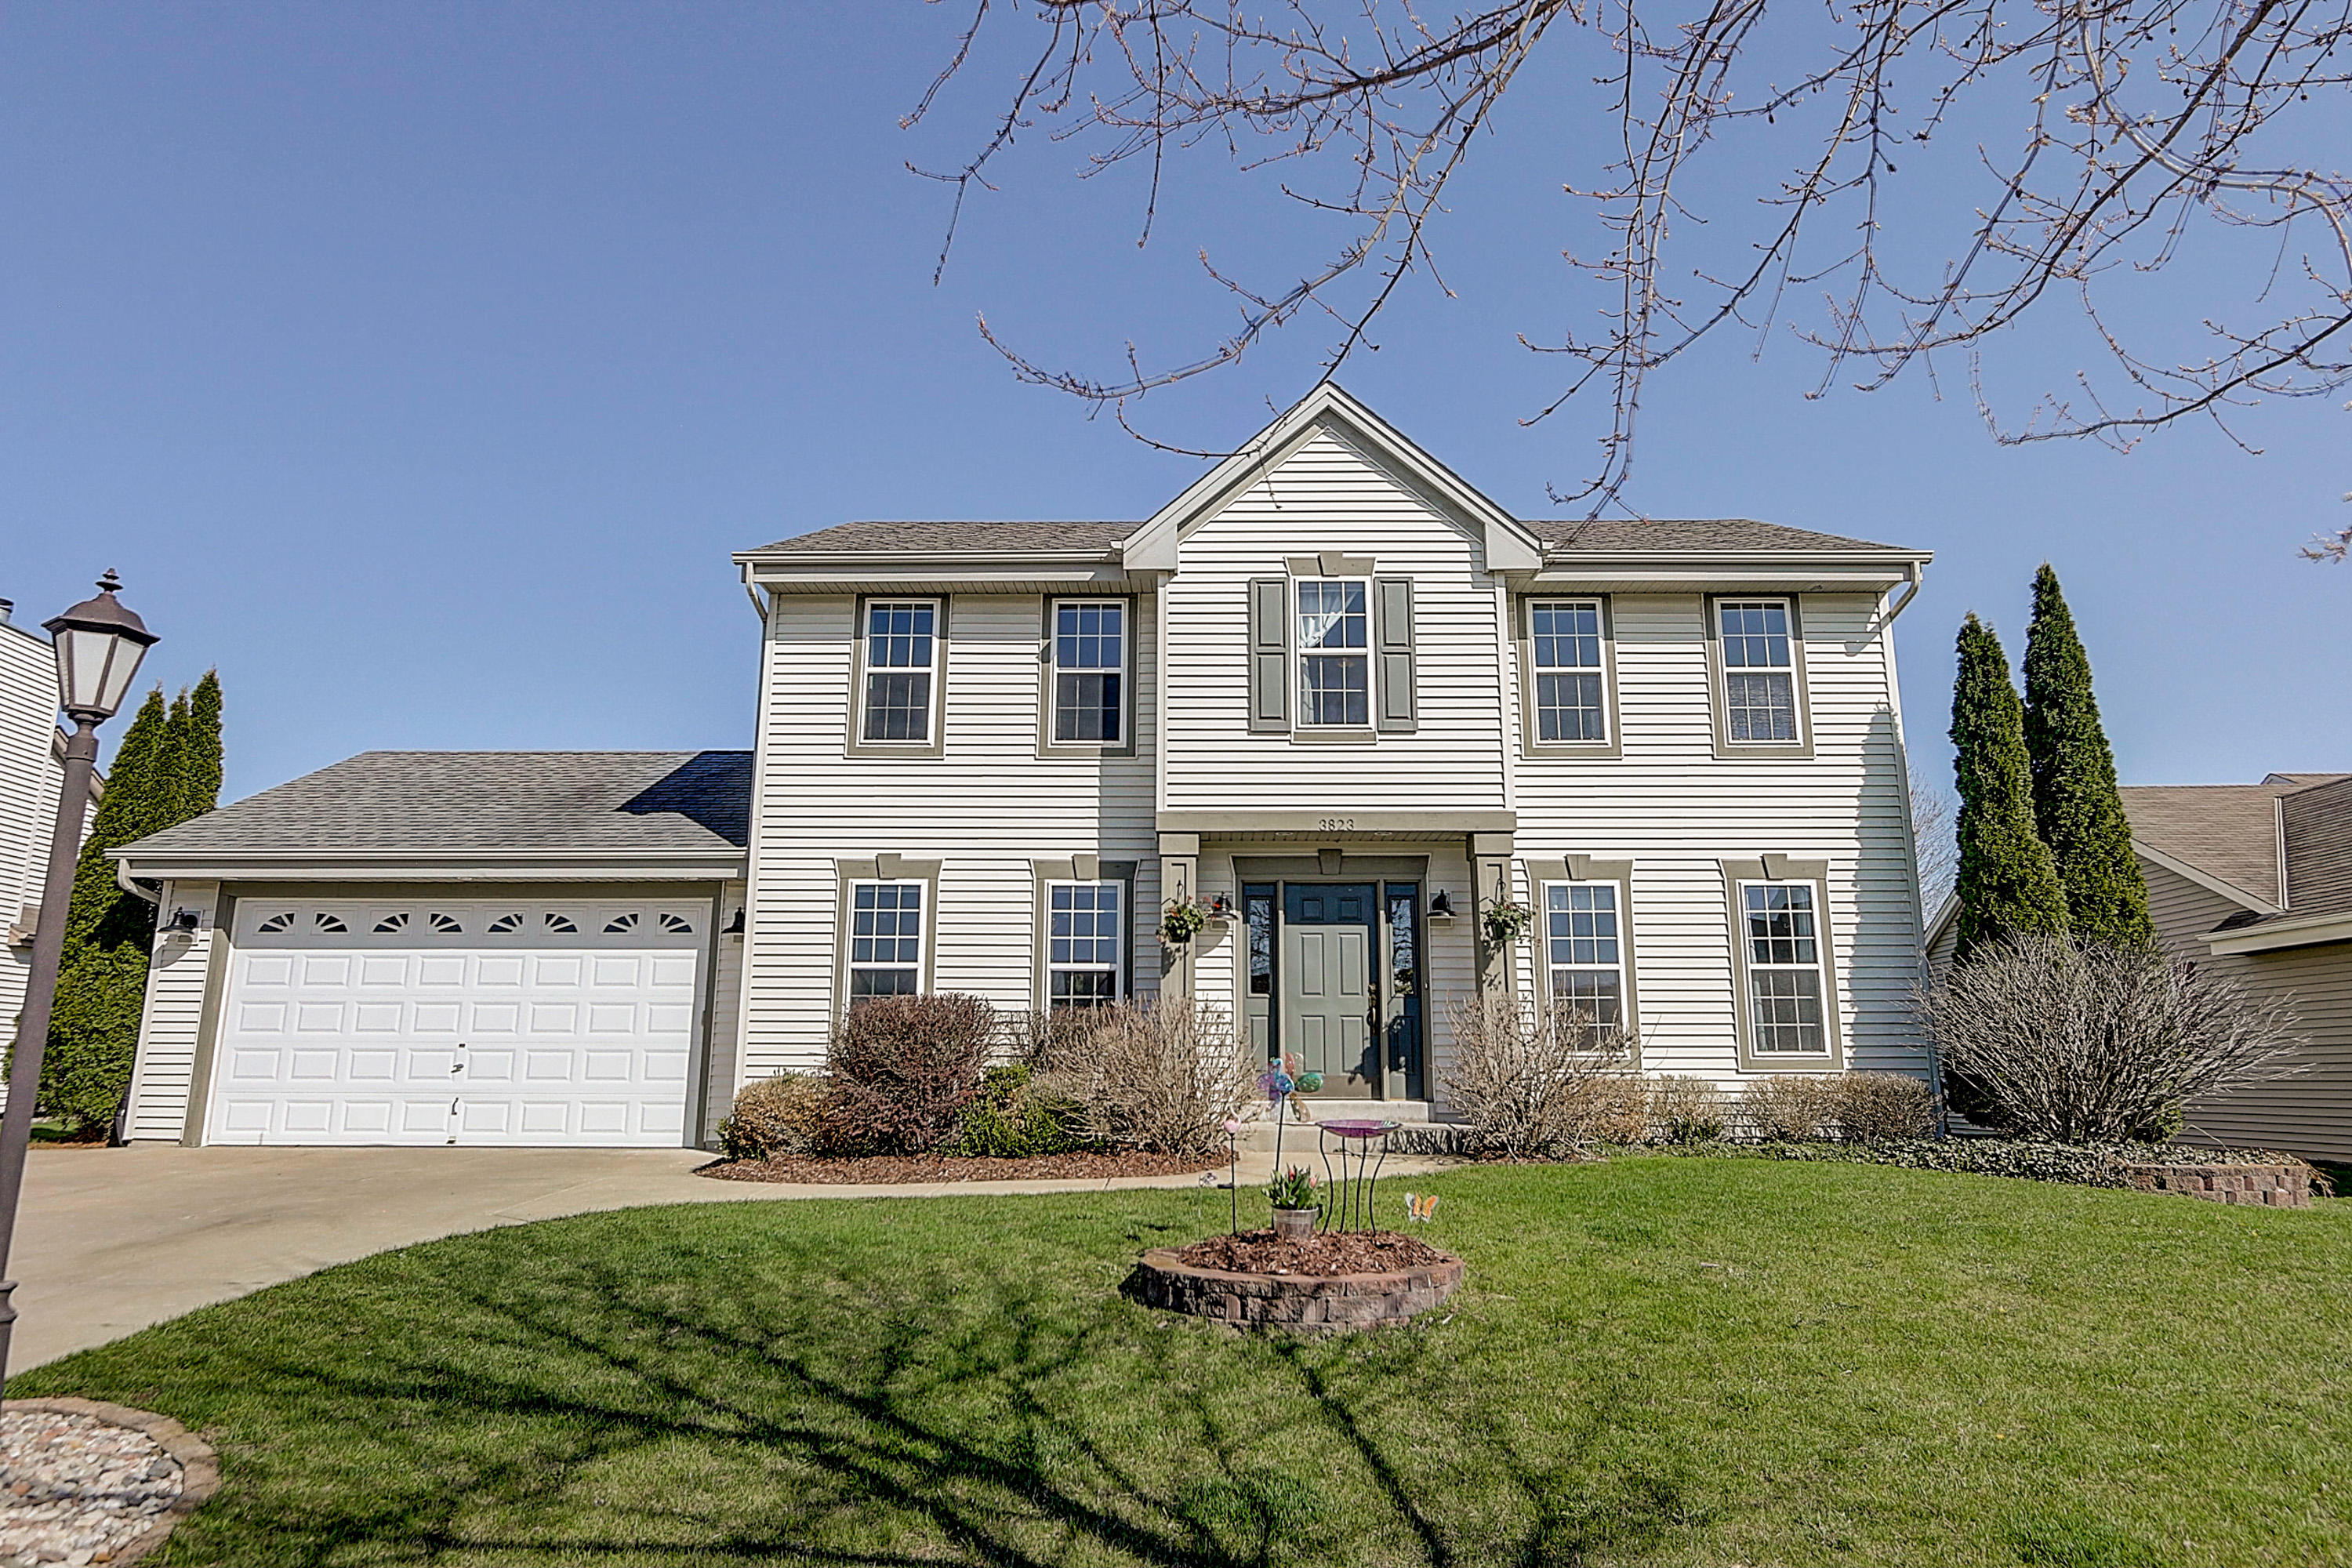 3823 Rivers Crossing Dr, Waukesha, Wisconsin 53189, 3 Bedrooms Bedrooms, ,3 BathroomsBathrooms,Single-Family,For Sale,Rivers Crossing Dr,1687786